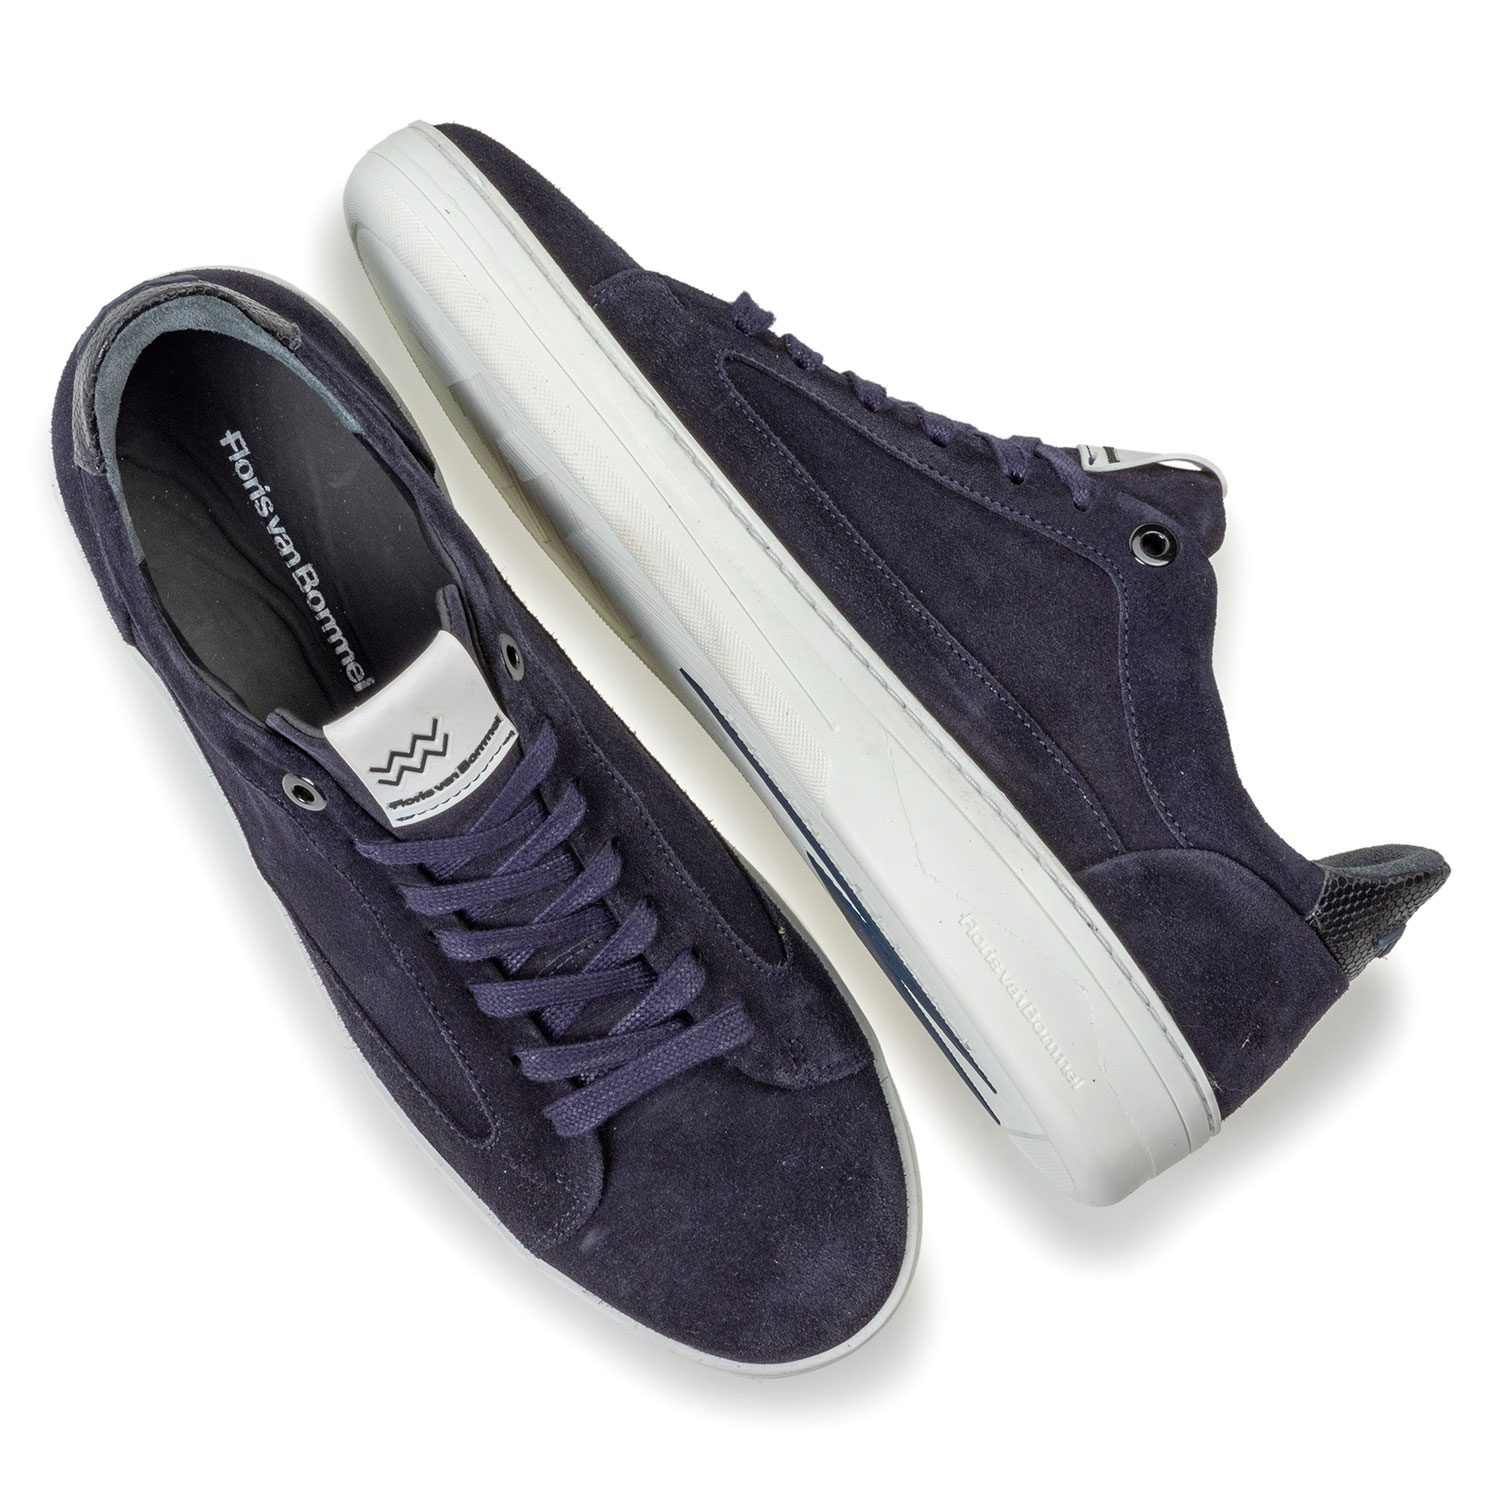 13265/28 - Sneaker blue suede leather